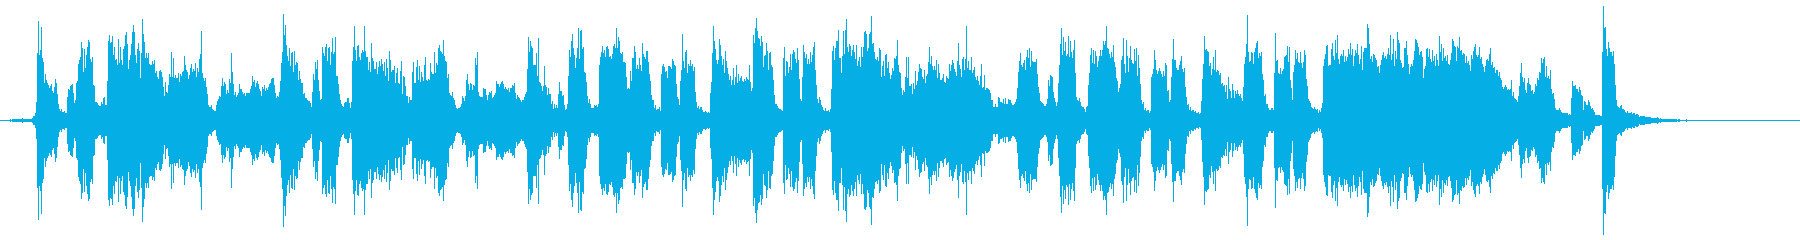 Birthday song with 4beat a cappella's reproduced waveform